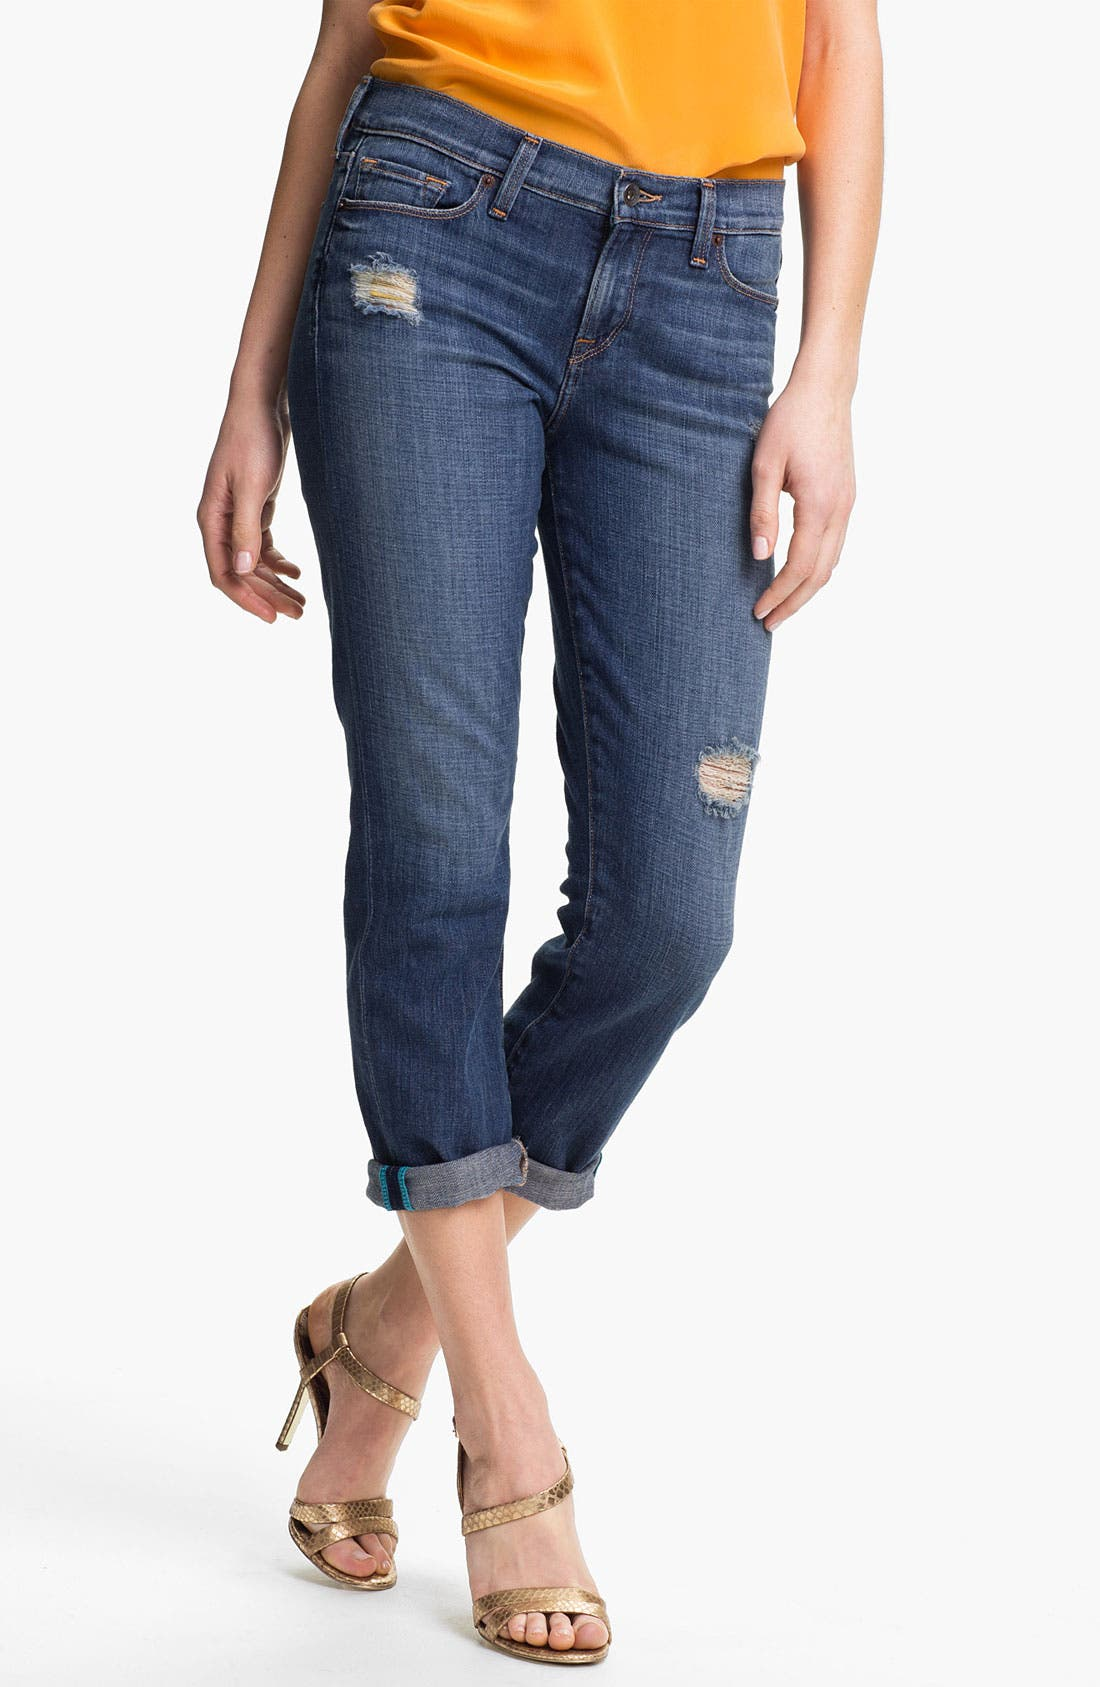 Alternate Image 1 Selected - Lucky Brand Boyfriend Jeans (Chloe)